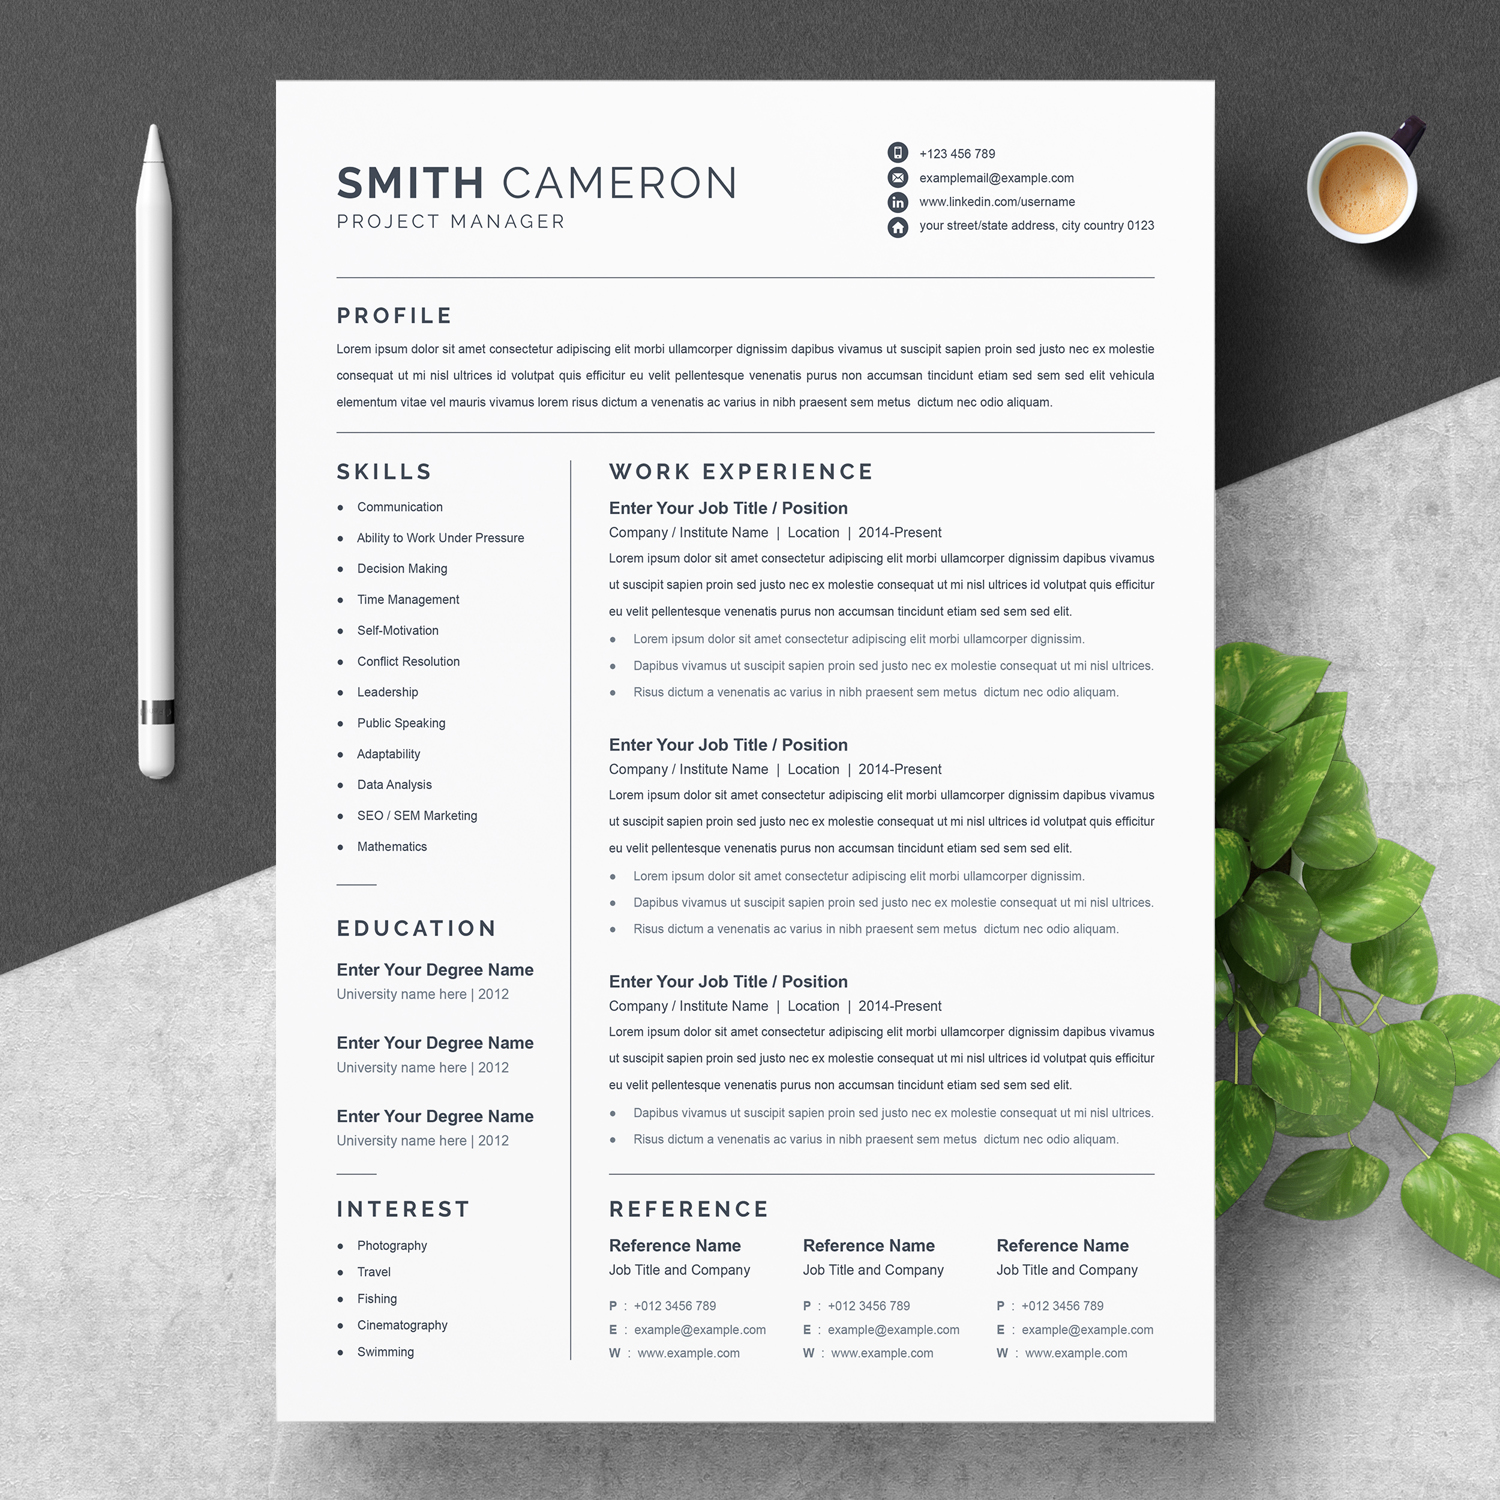 Project Manager Resume 2021